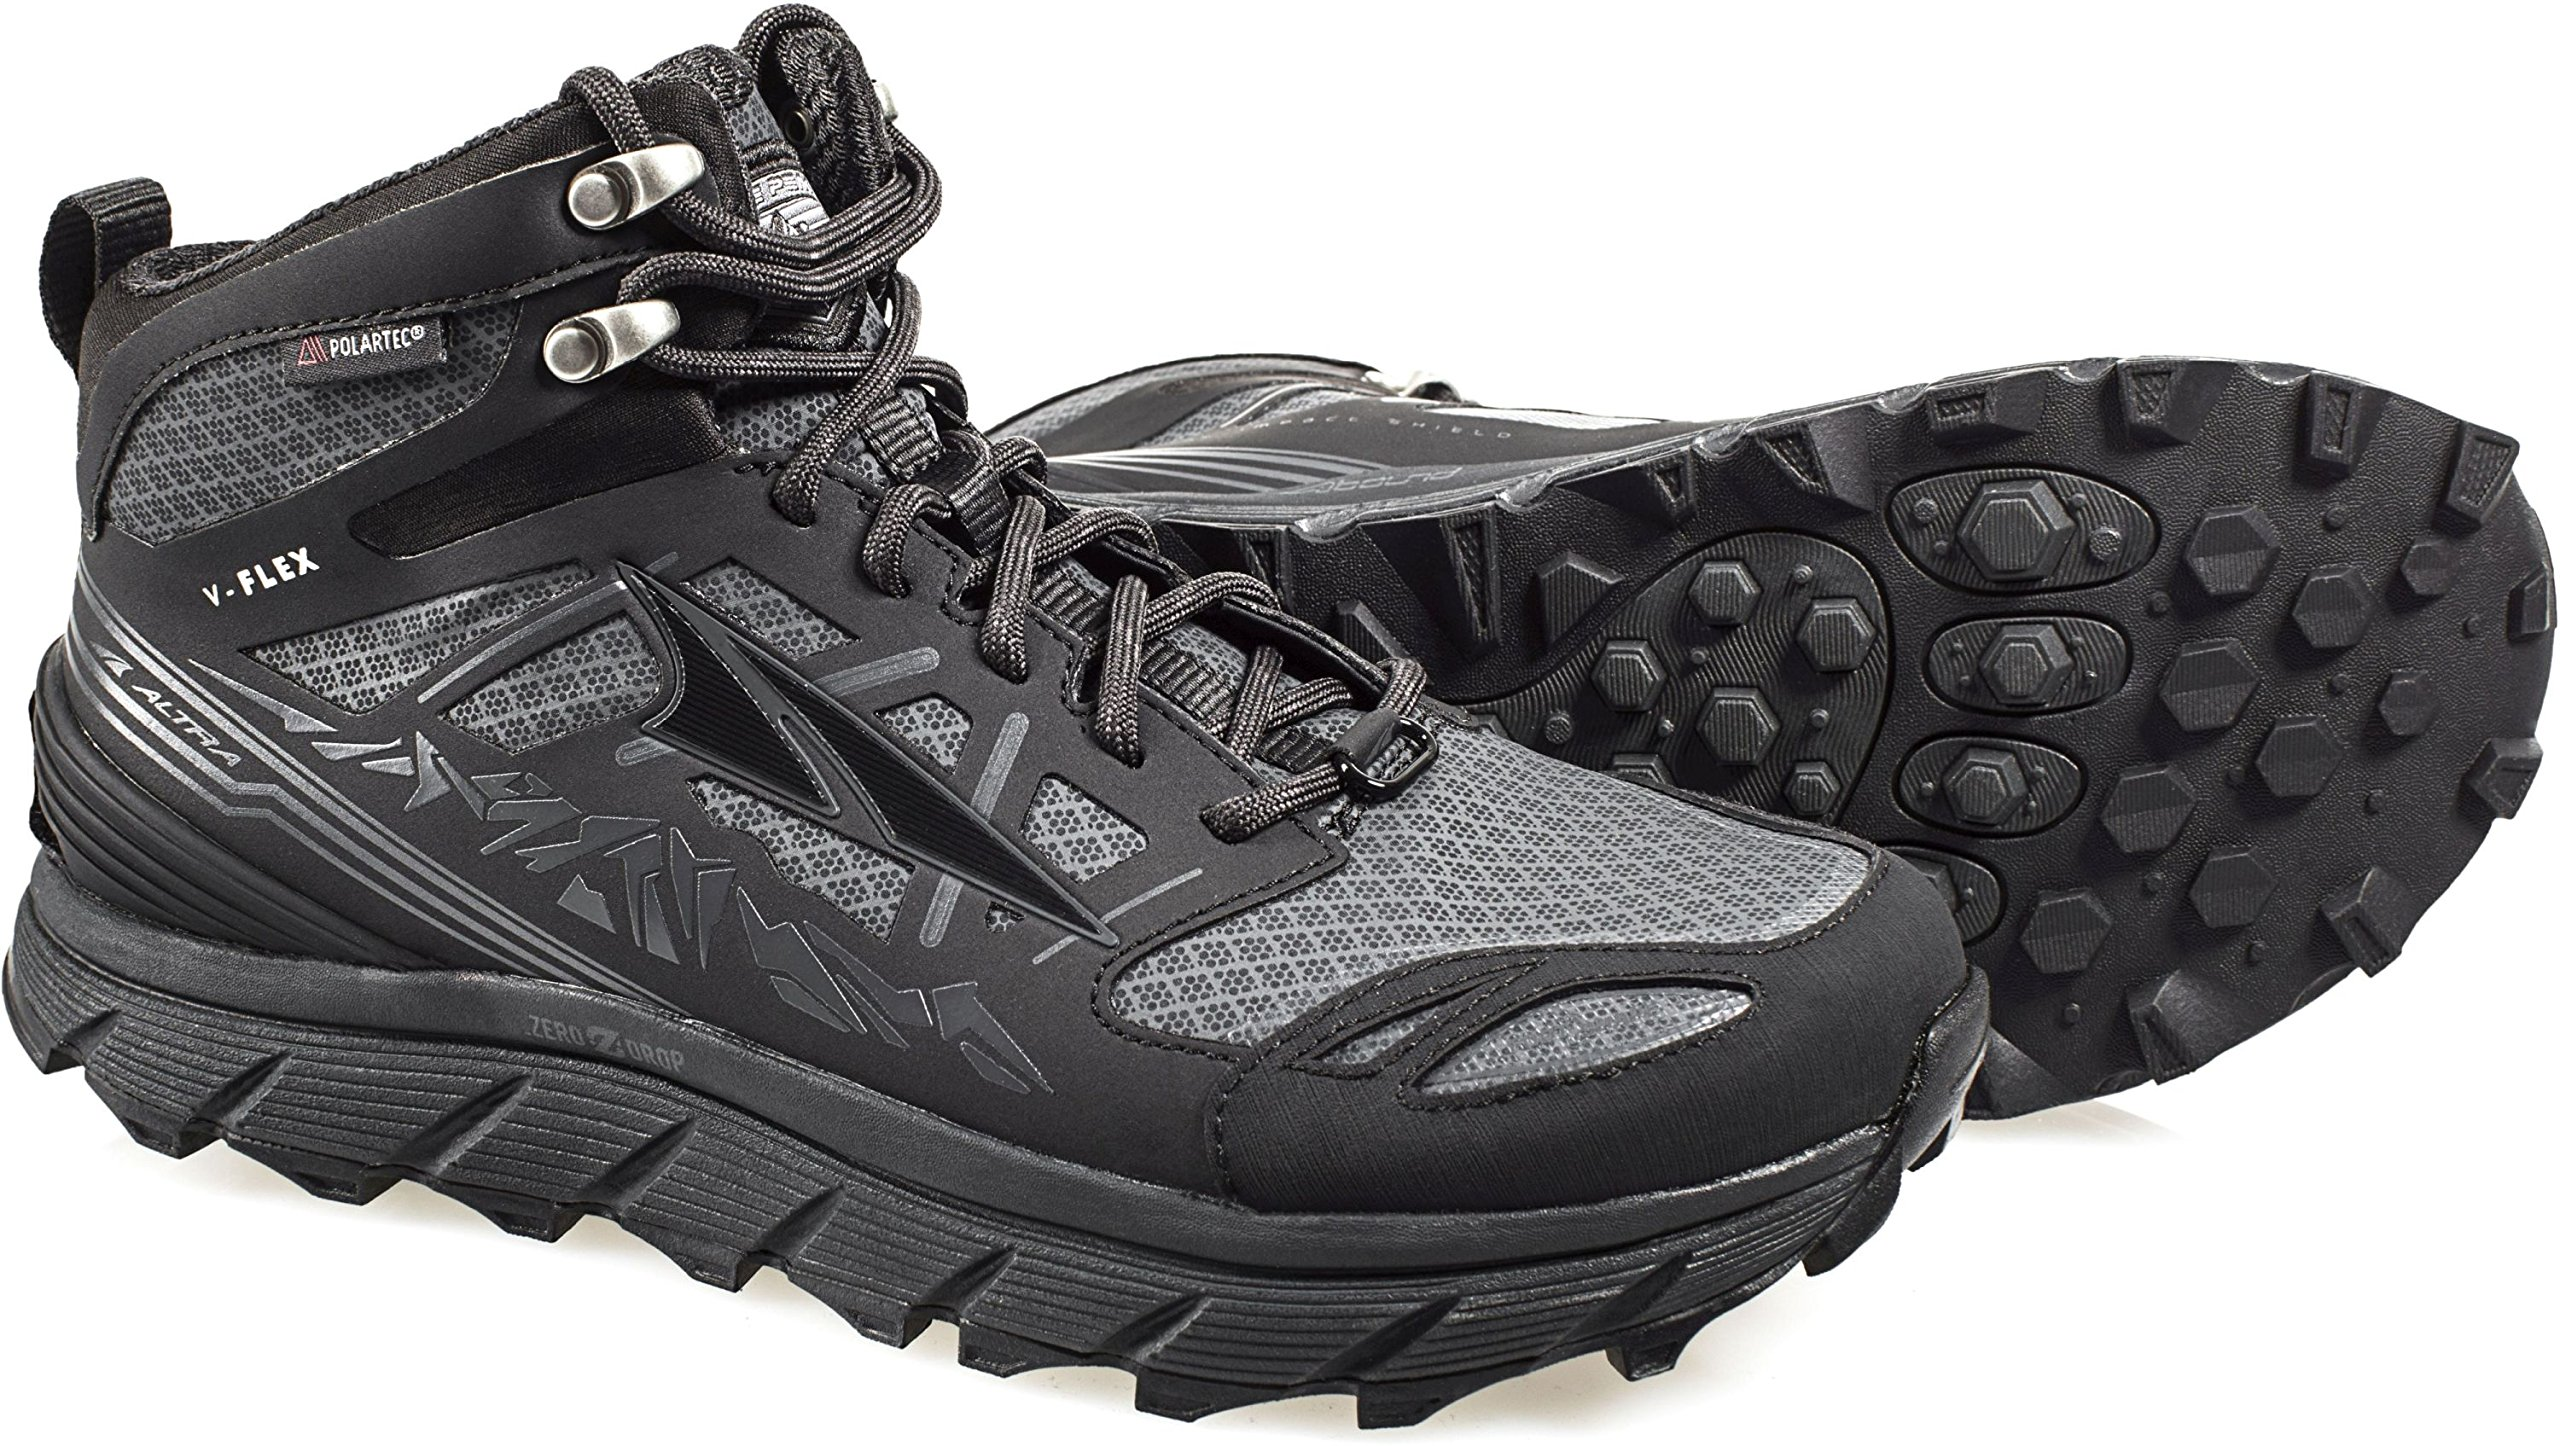 Altra Lone Peak 3 Mid Neo Running Shoes - Women's Black 11